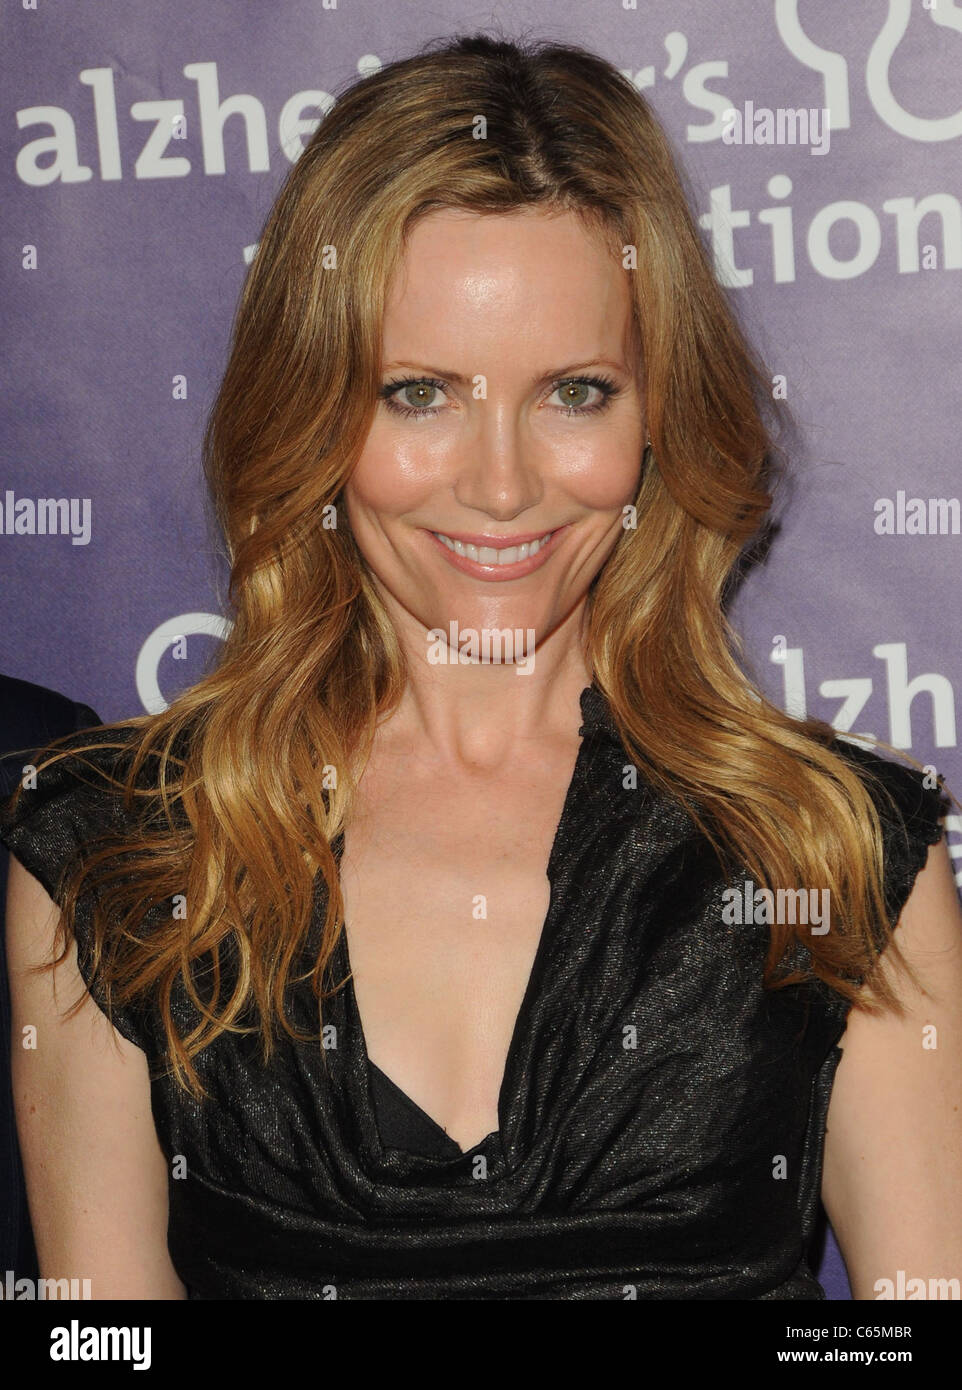 Leslie Mann in attendance for 19th Annual A Night at Sardi's Fundraiser and Awards Dinner, Beverly Hilton Hotel, - Stock Image